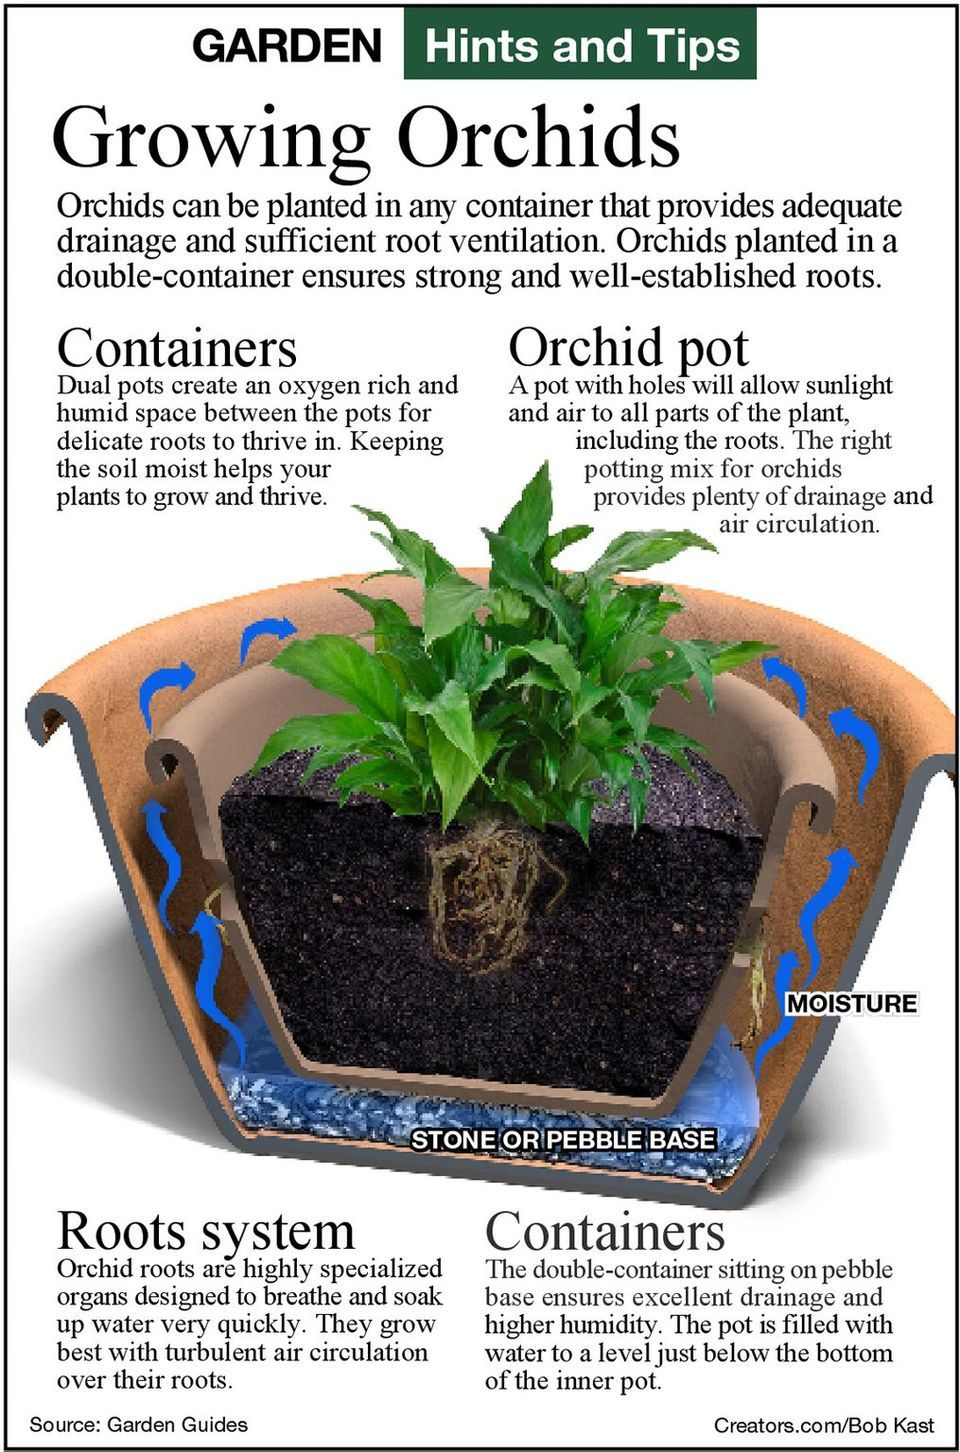 3db9bcec74e1b386eb5b019562fe8870 - Type Of Soil For Container Gardening